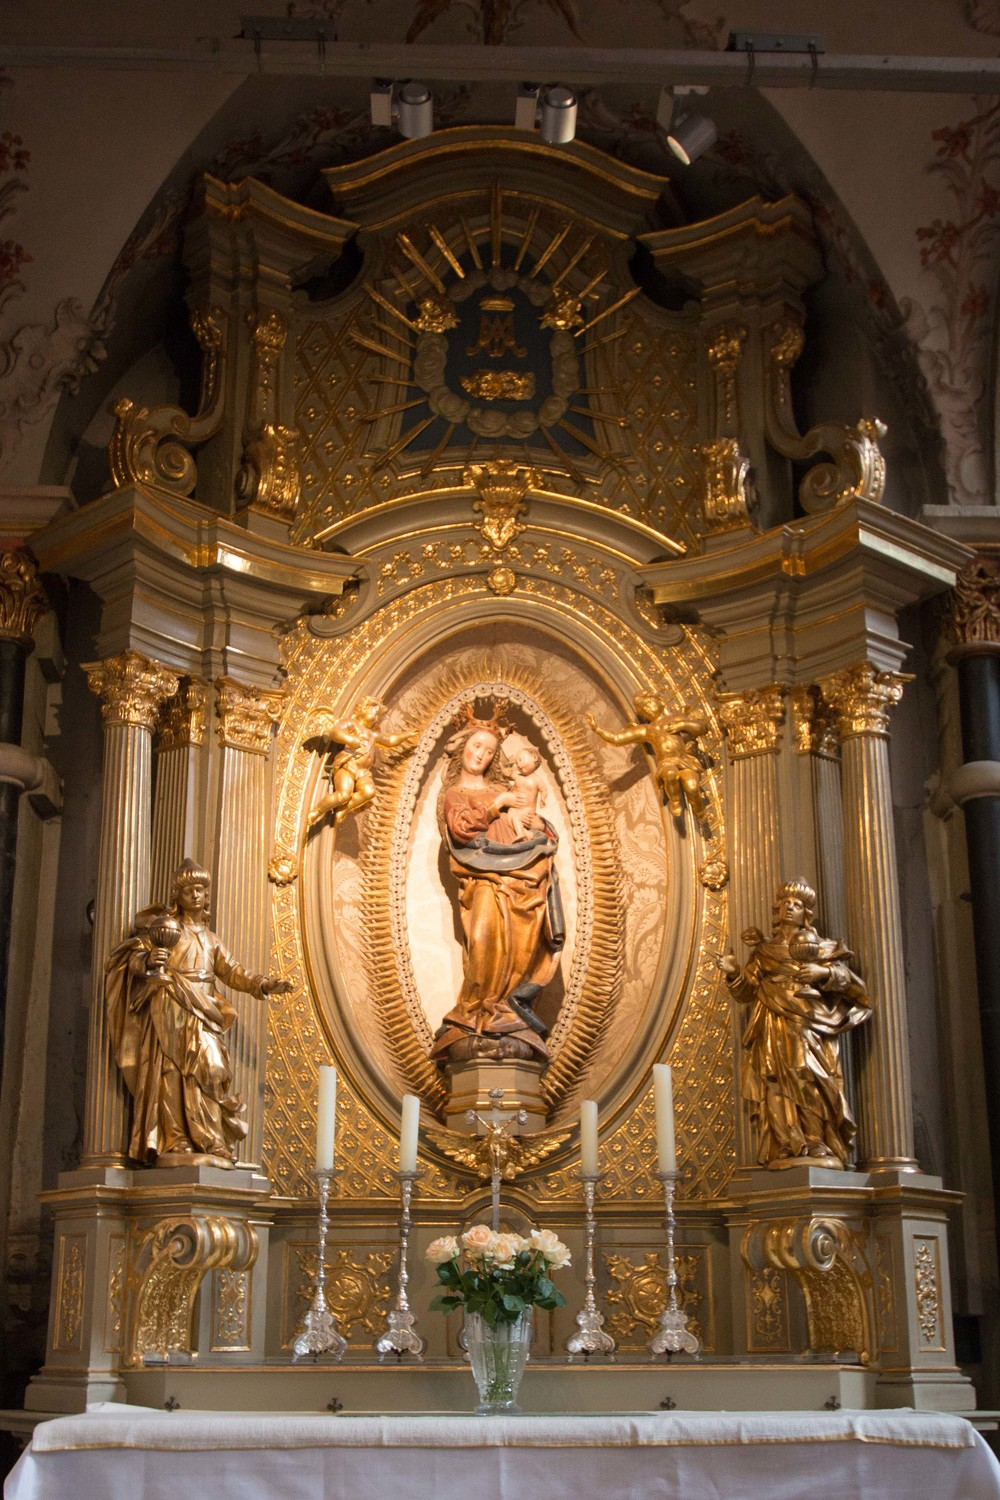 The alter of Mary